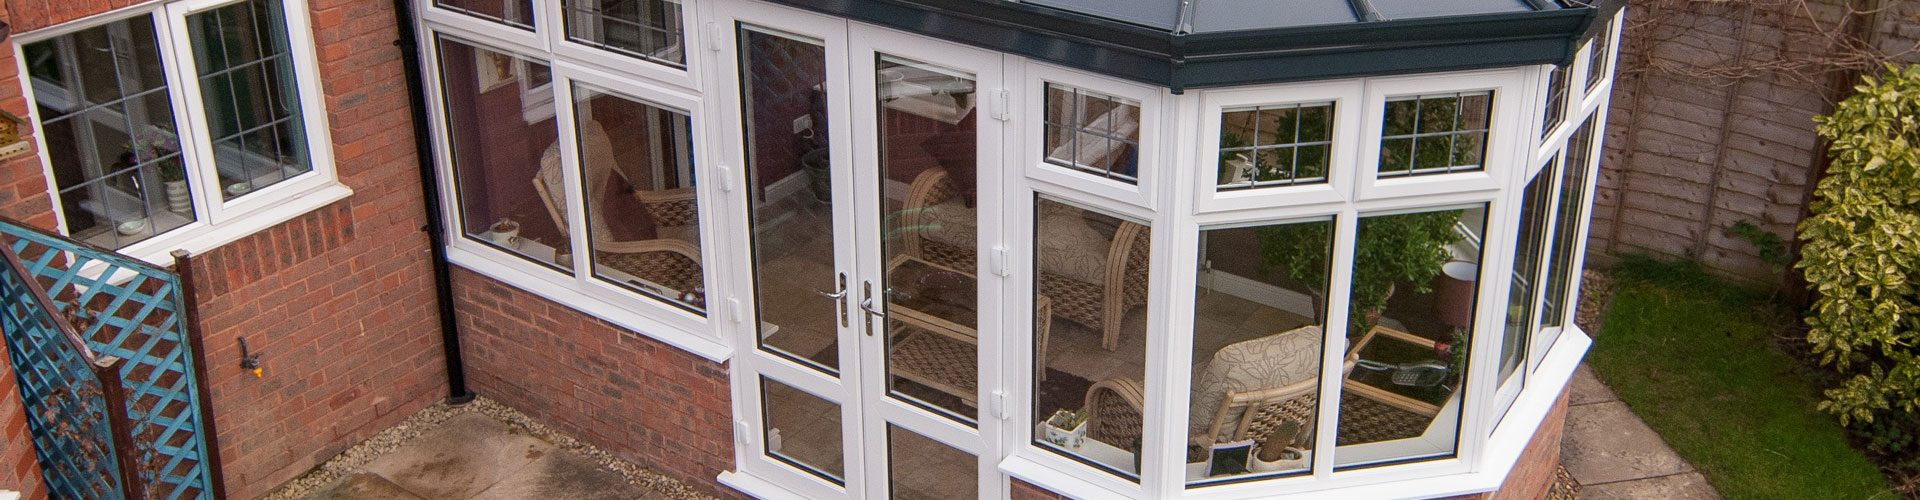 uPVC Windows for Conservatories in Biggleswade